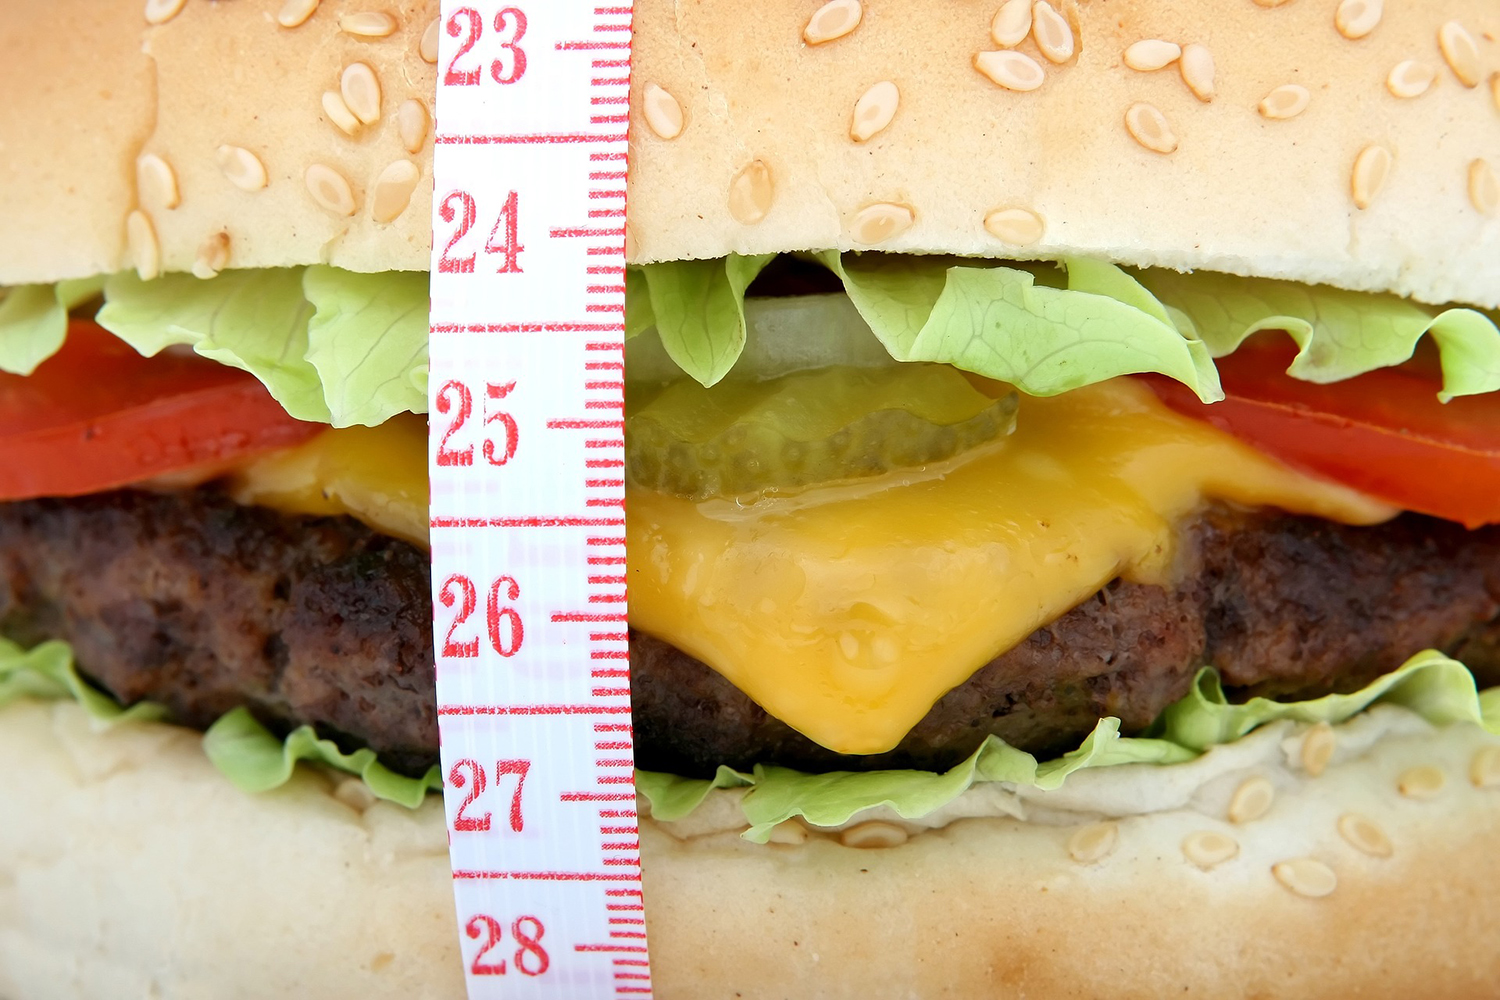 Hamburger and Tape Measure Dieting Concept